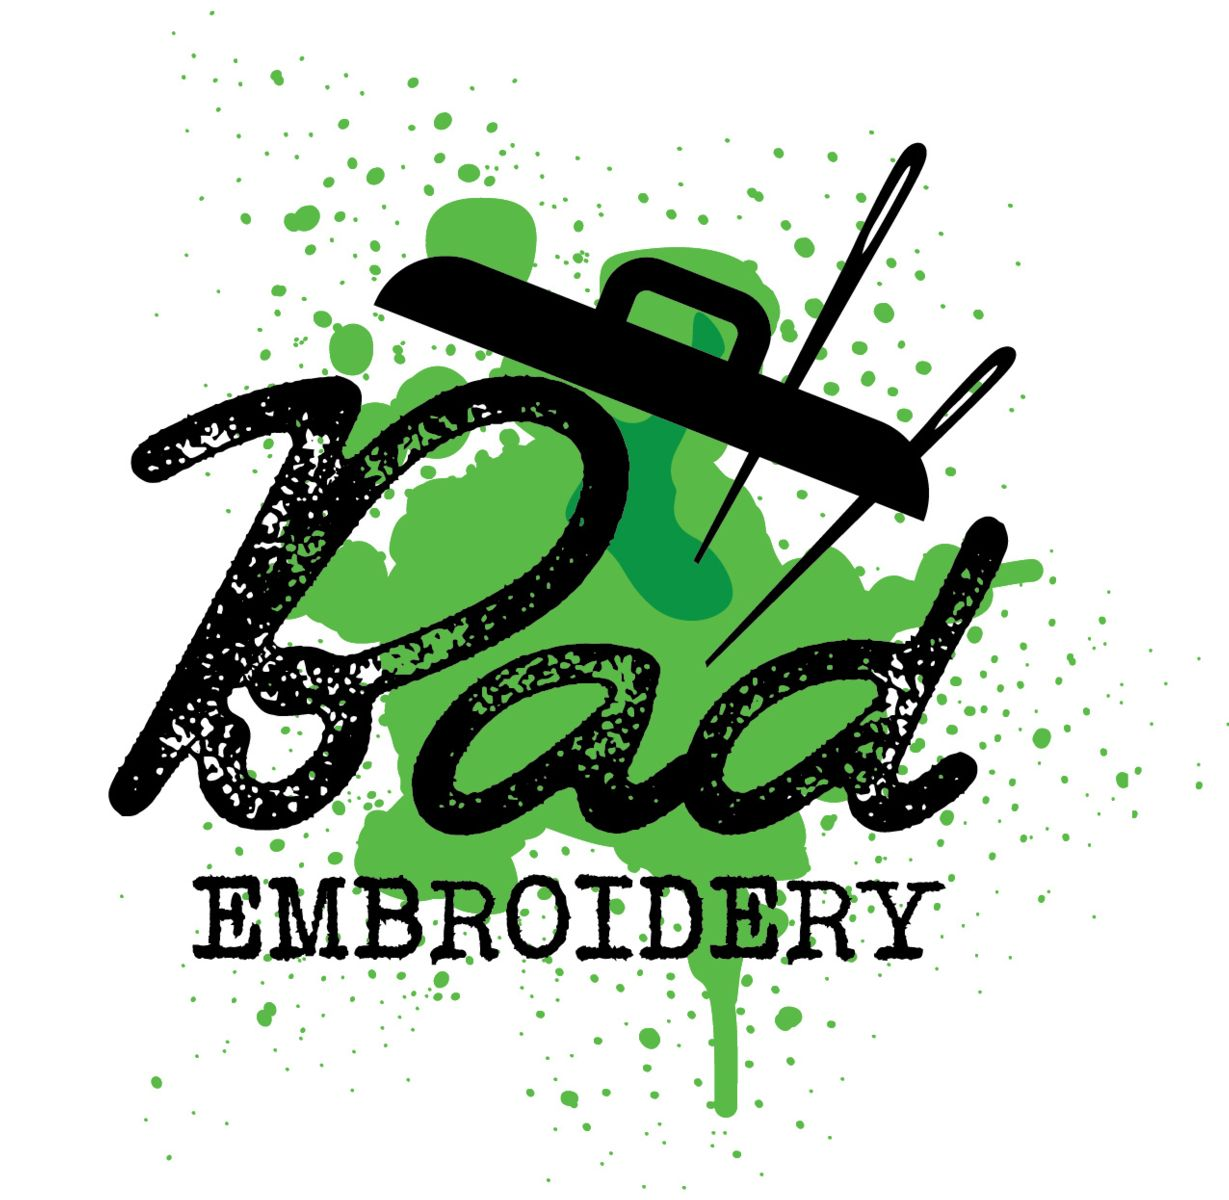 Poor quality logo embroidery